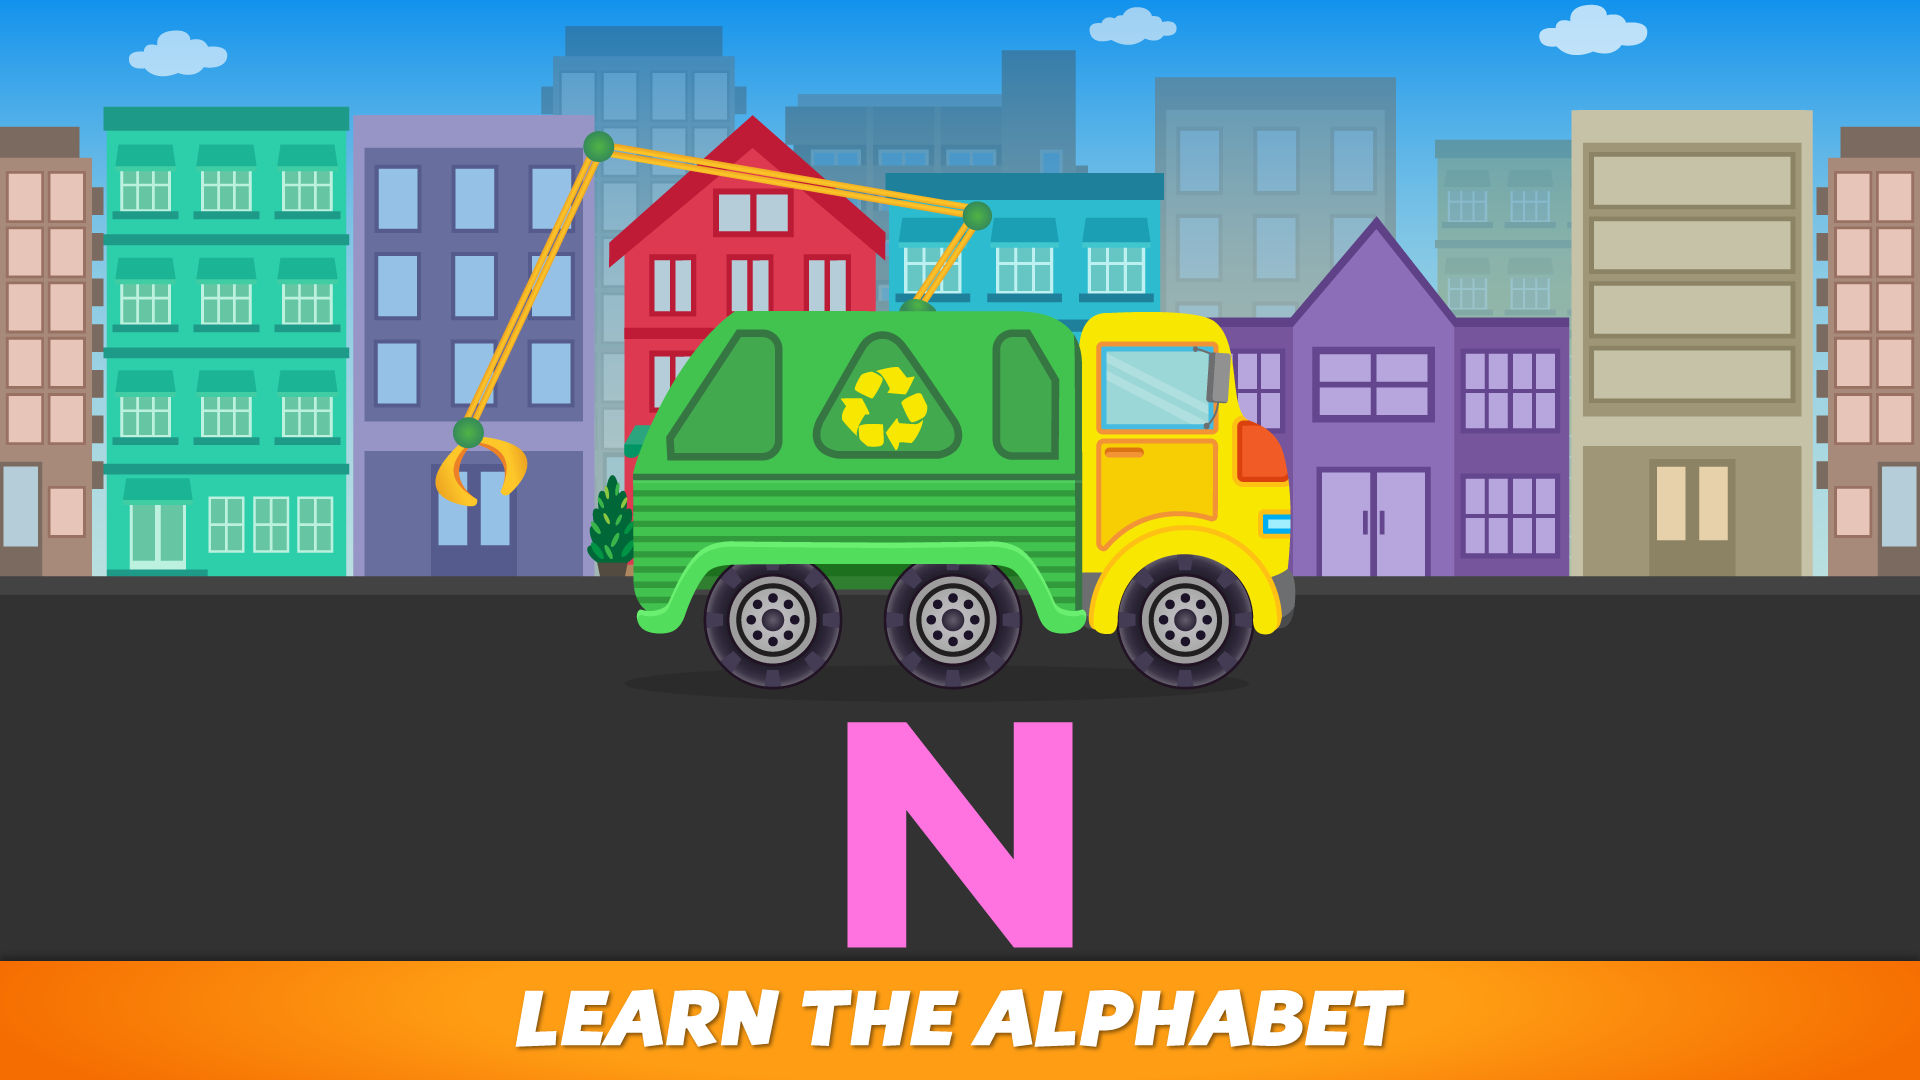 ABC Garbage Truck - Alphabet Fun Game for Preschool Toddler Kids Learning ABCs and Love Trucks and Things That Go screenshot 3